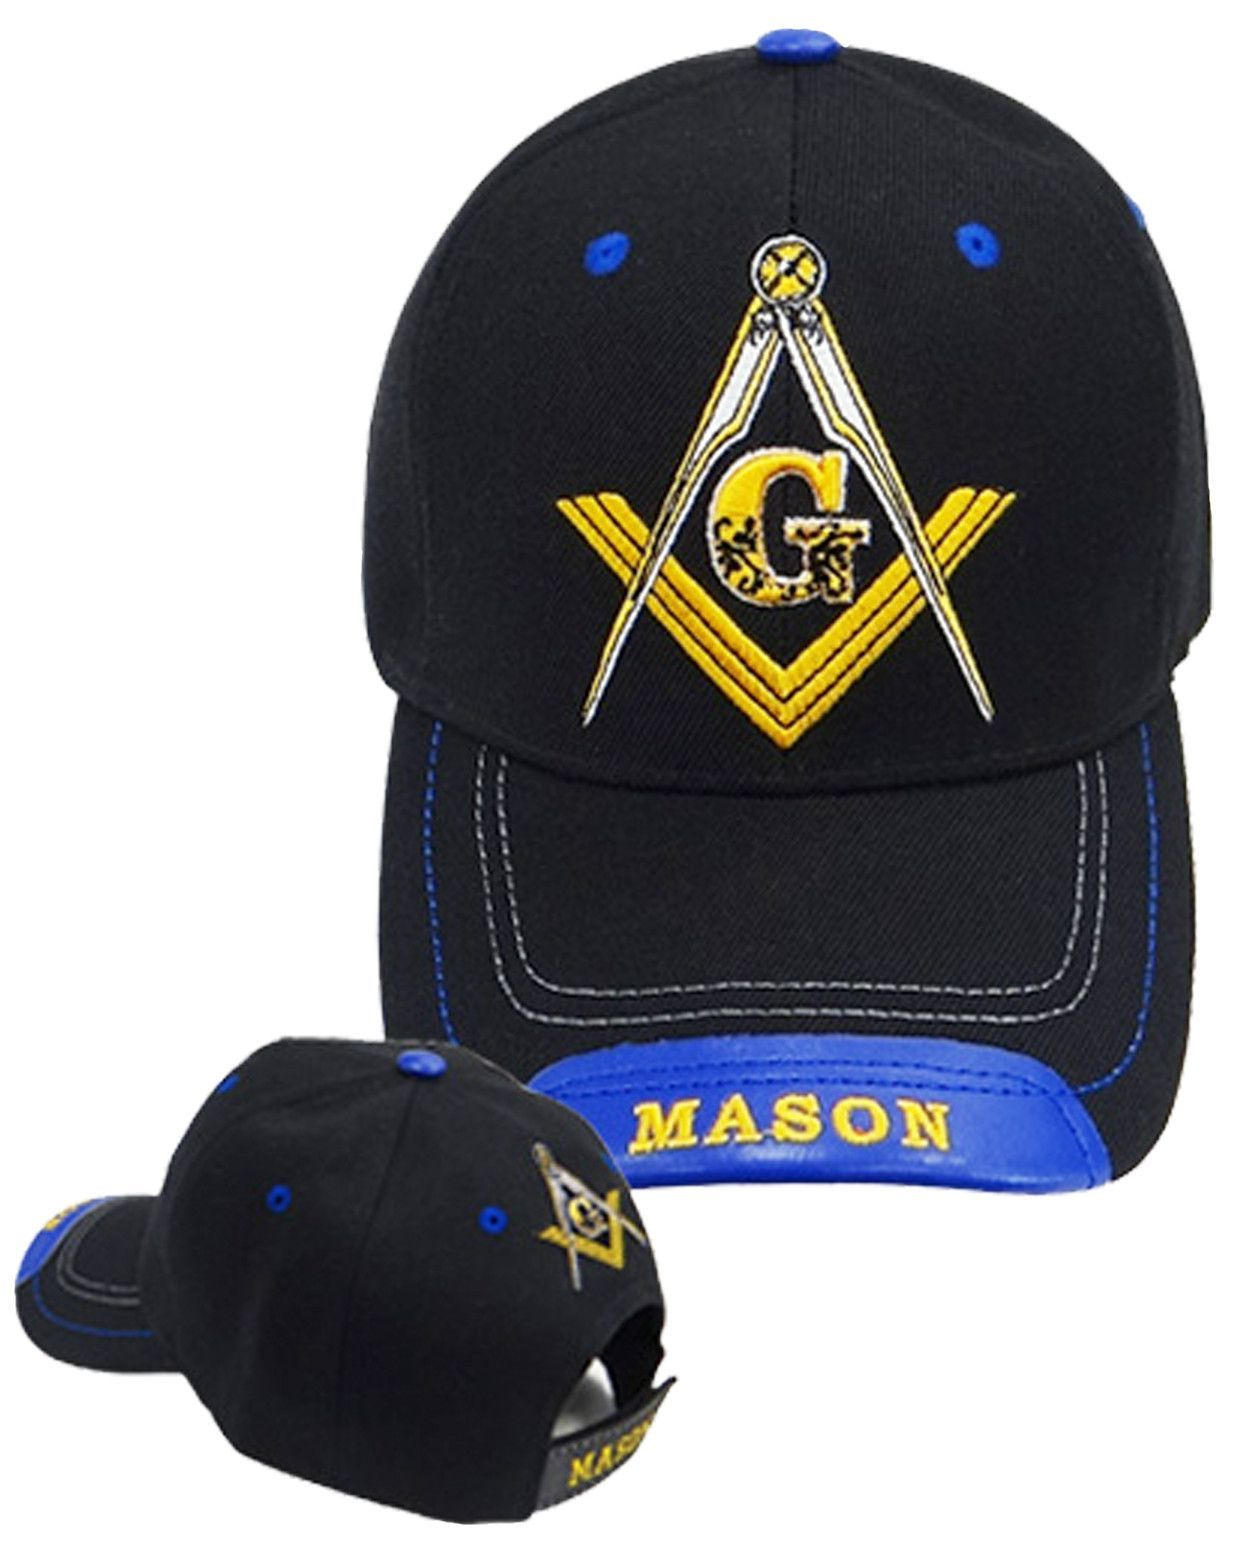 c26b7071 Mason Hat Black and Blue Baseball Cap with Masonic Logo Freemasons Shriners  Prince Hall Lodge Headwear